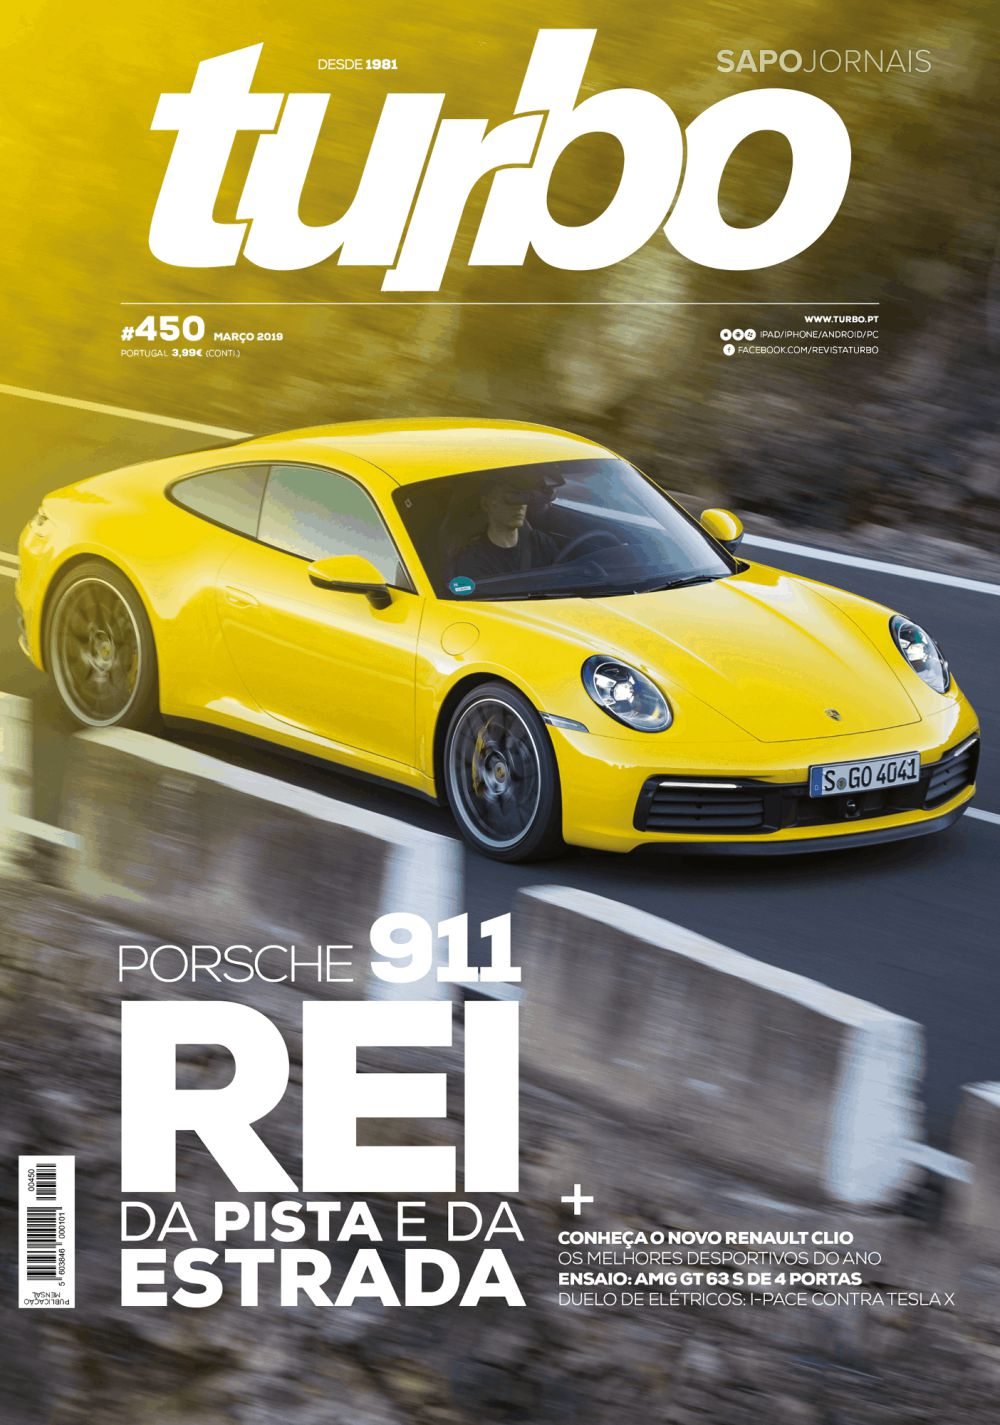 Capa da Revista Turbo